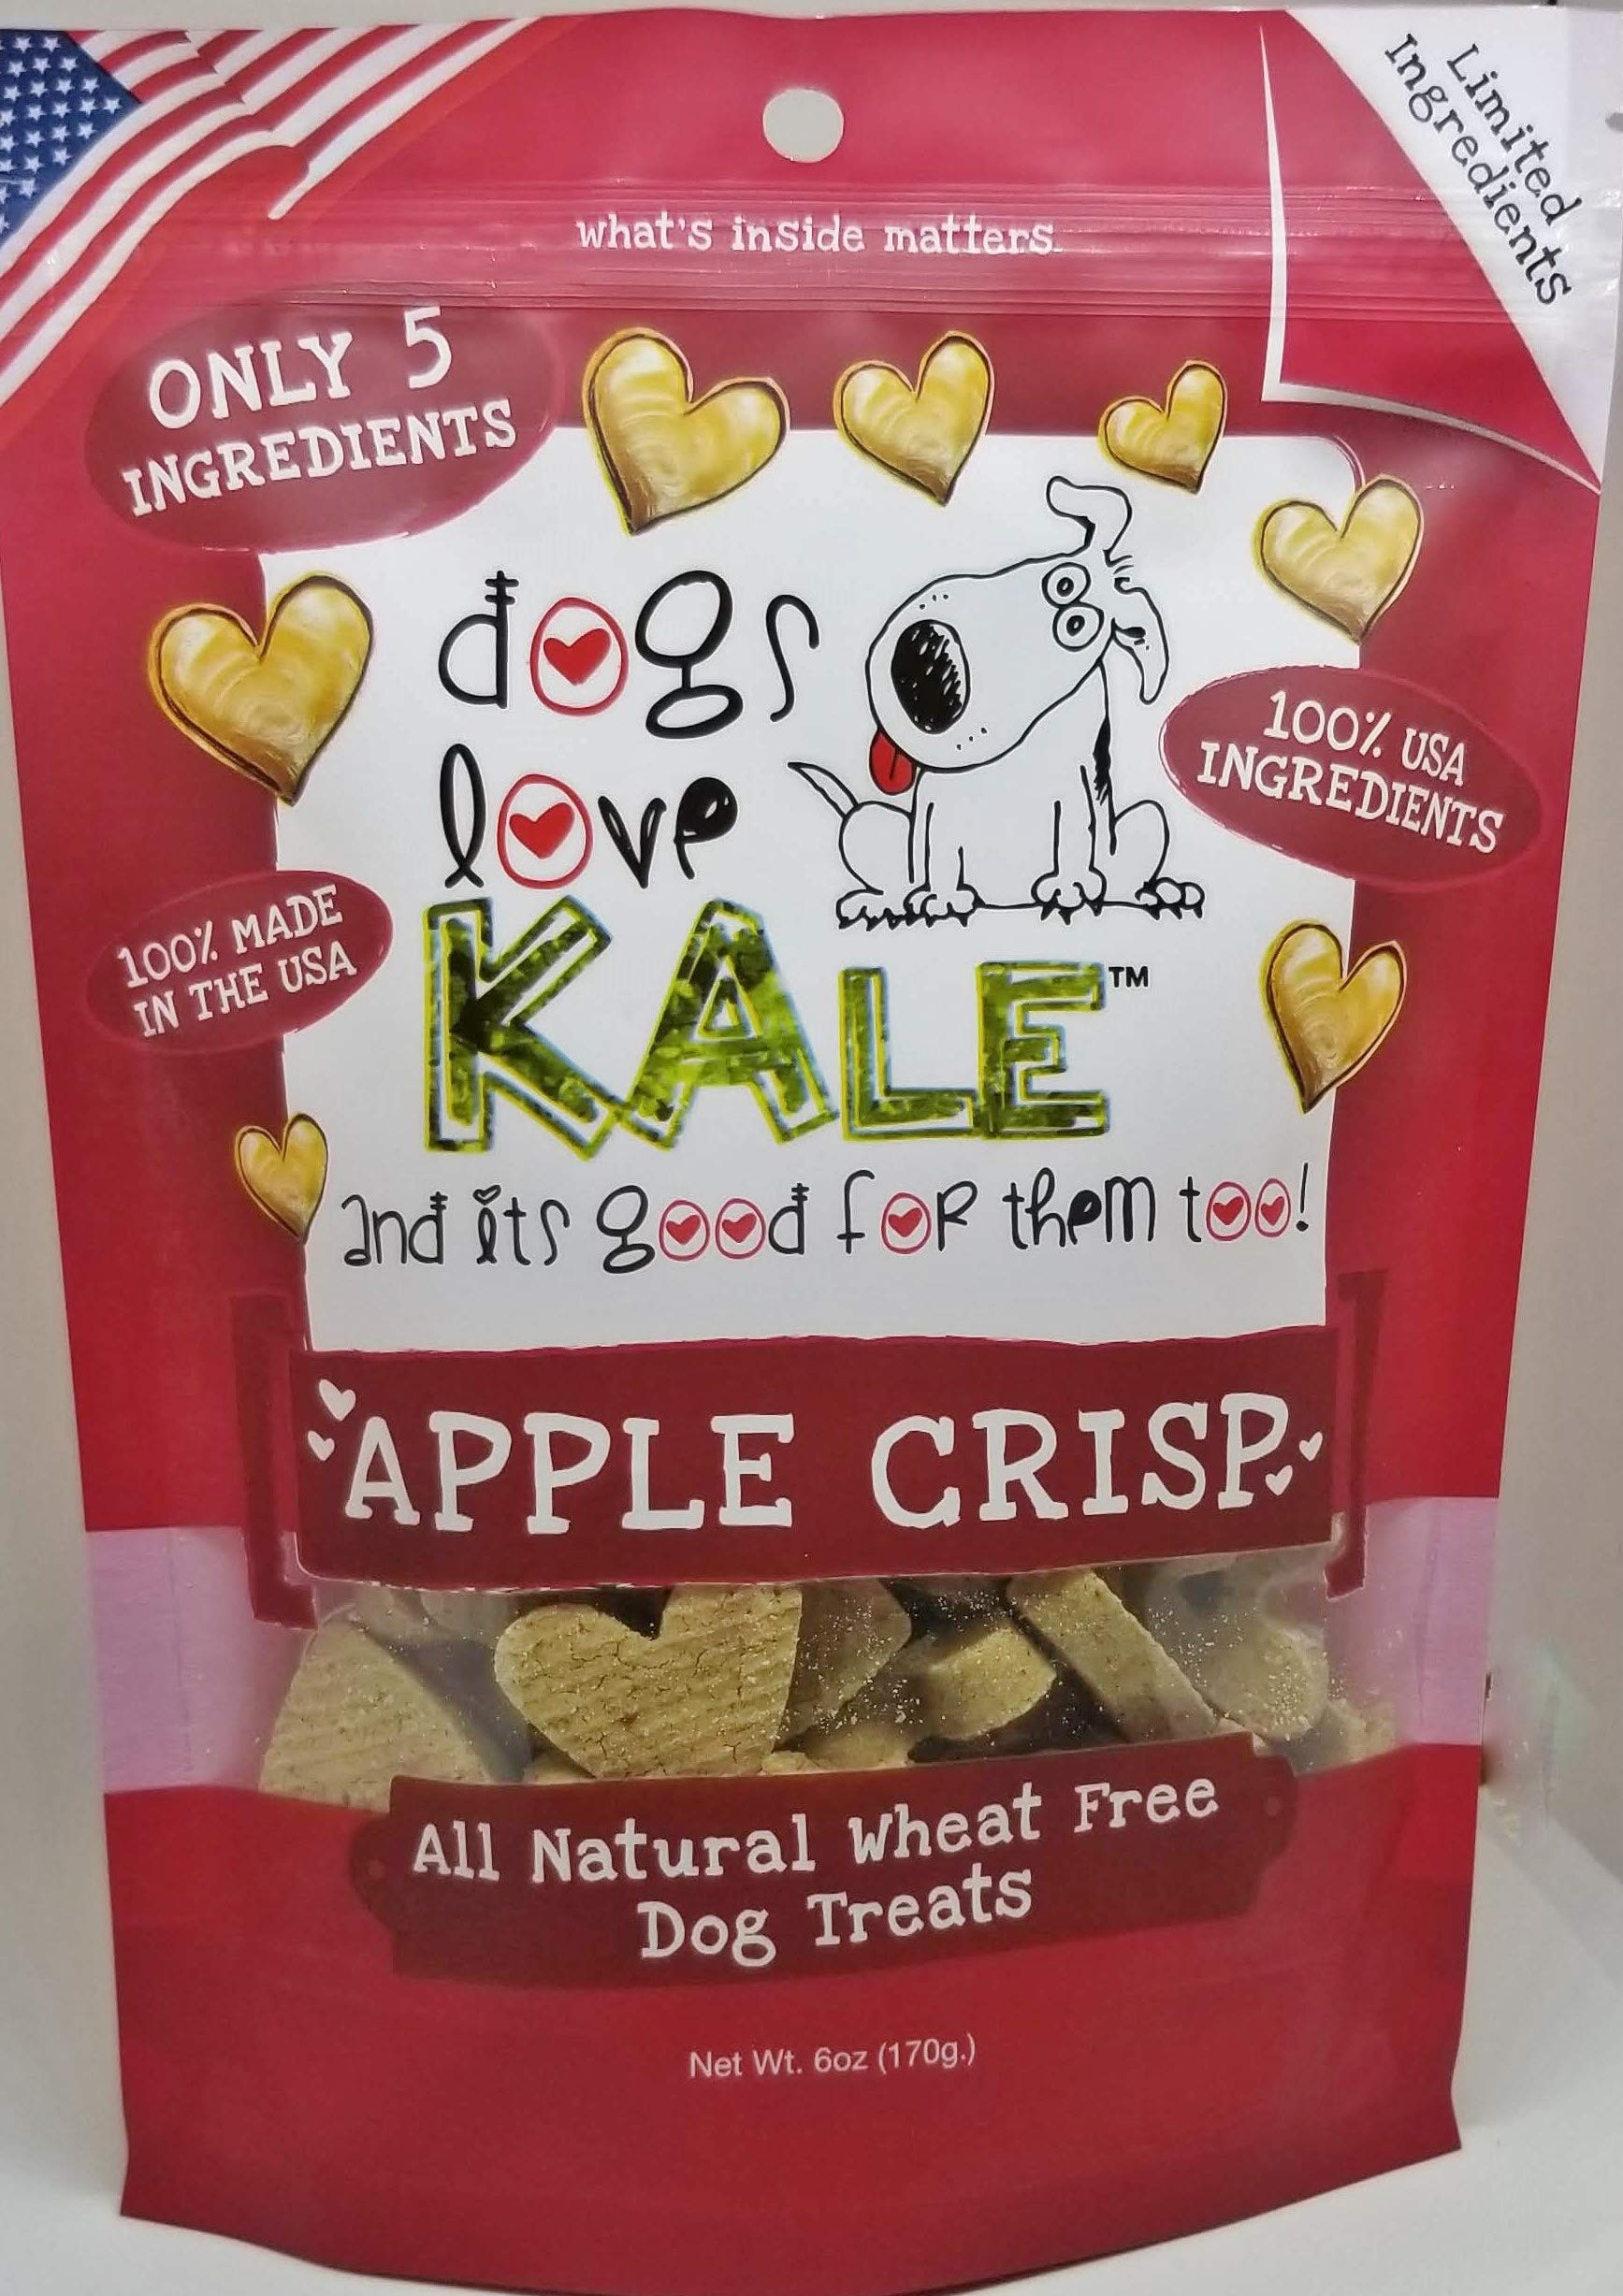 Dogs Love Kale Dog Treats, Apple Crisp, Crunchy Pet Snacks, Organic, Gluten-Free, Corn-Free, And Soy-Free, 6 Calories, 6 Oz. Bags (DLK-00010-12) Case Of 12 Bags by Dogs Love Kale